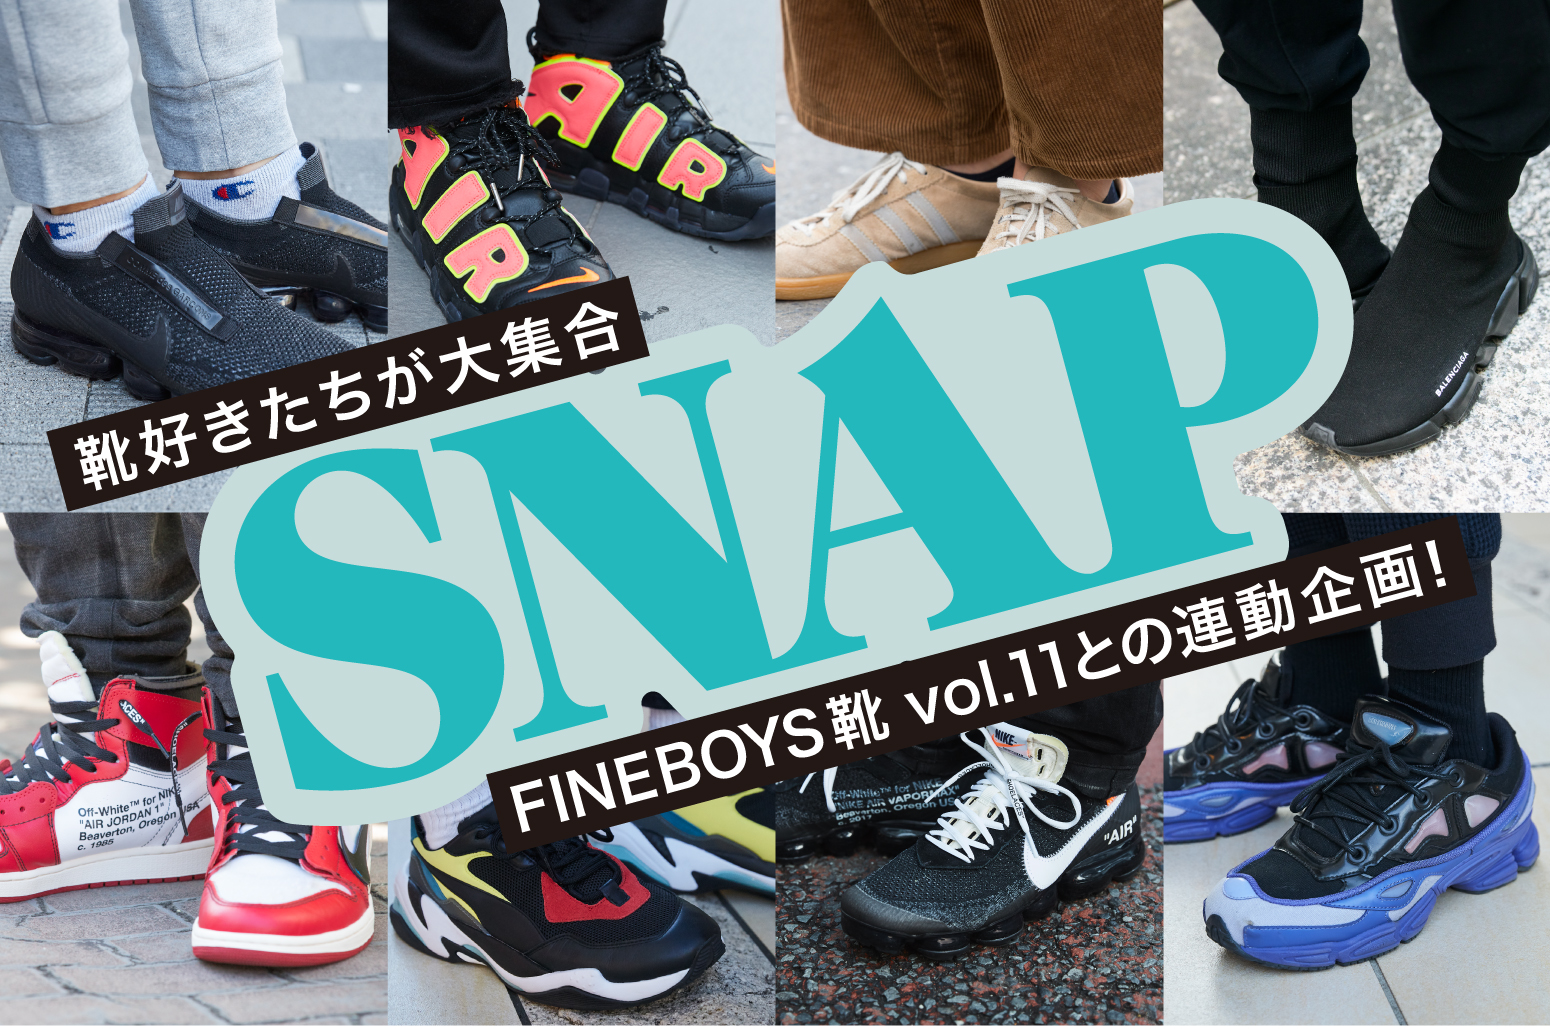 https://fineboys-online.jp/thegear/content/theme/img/org/article/585/main.jpg?t=1537556734